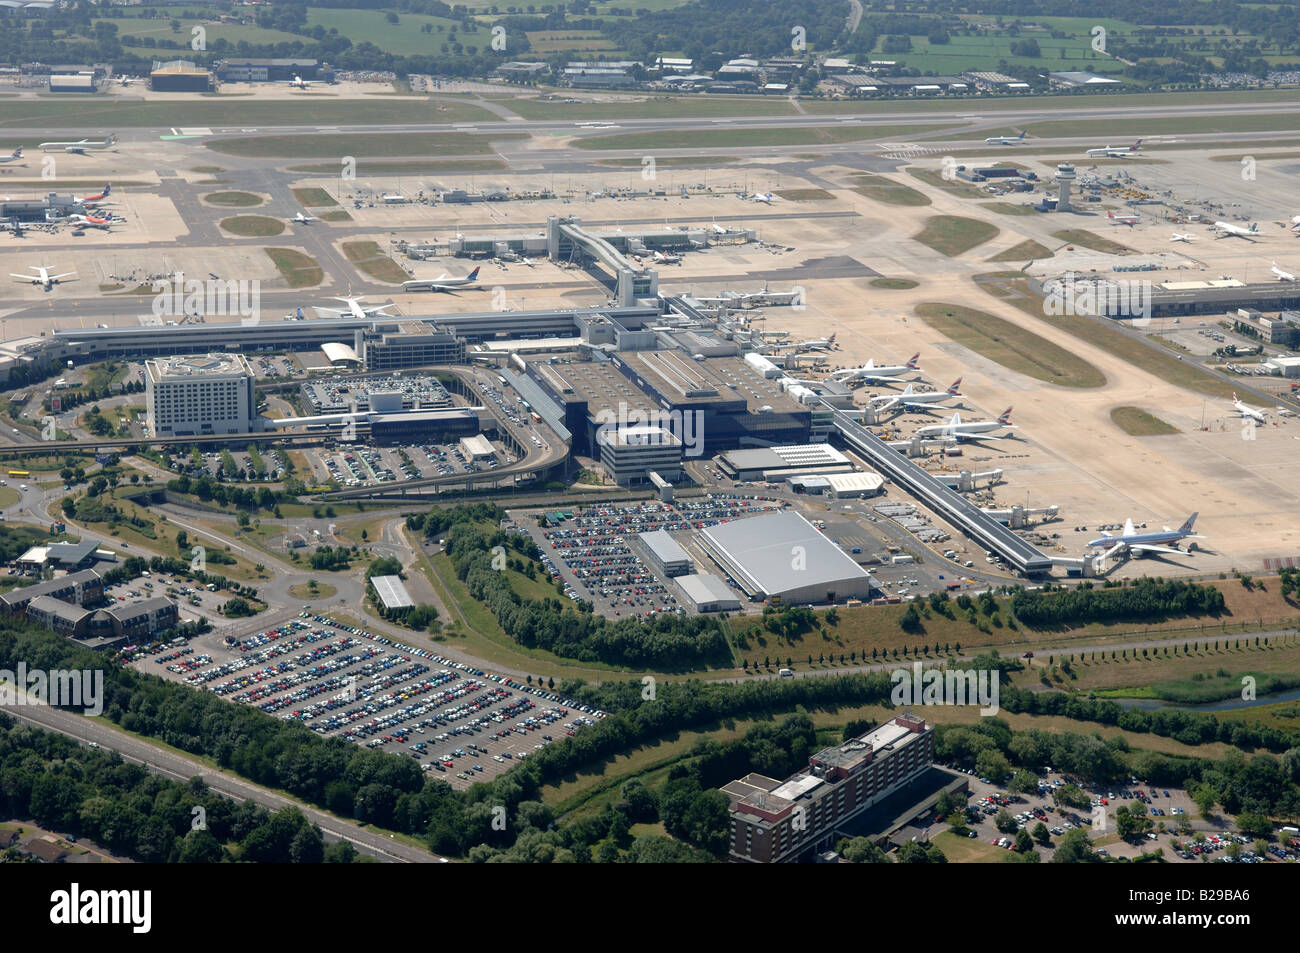 Gatwick Airport Date 12 03 2008 Ref ZB648 111149 0028 COMPULSORY CREDIT World Pictures Photoshot - Stock Image